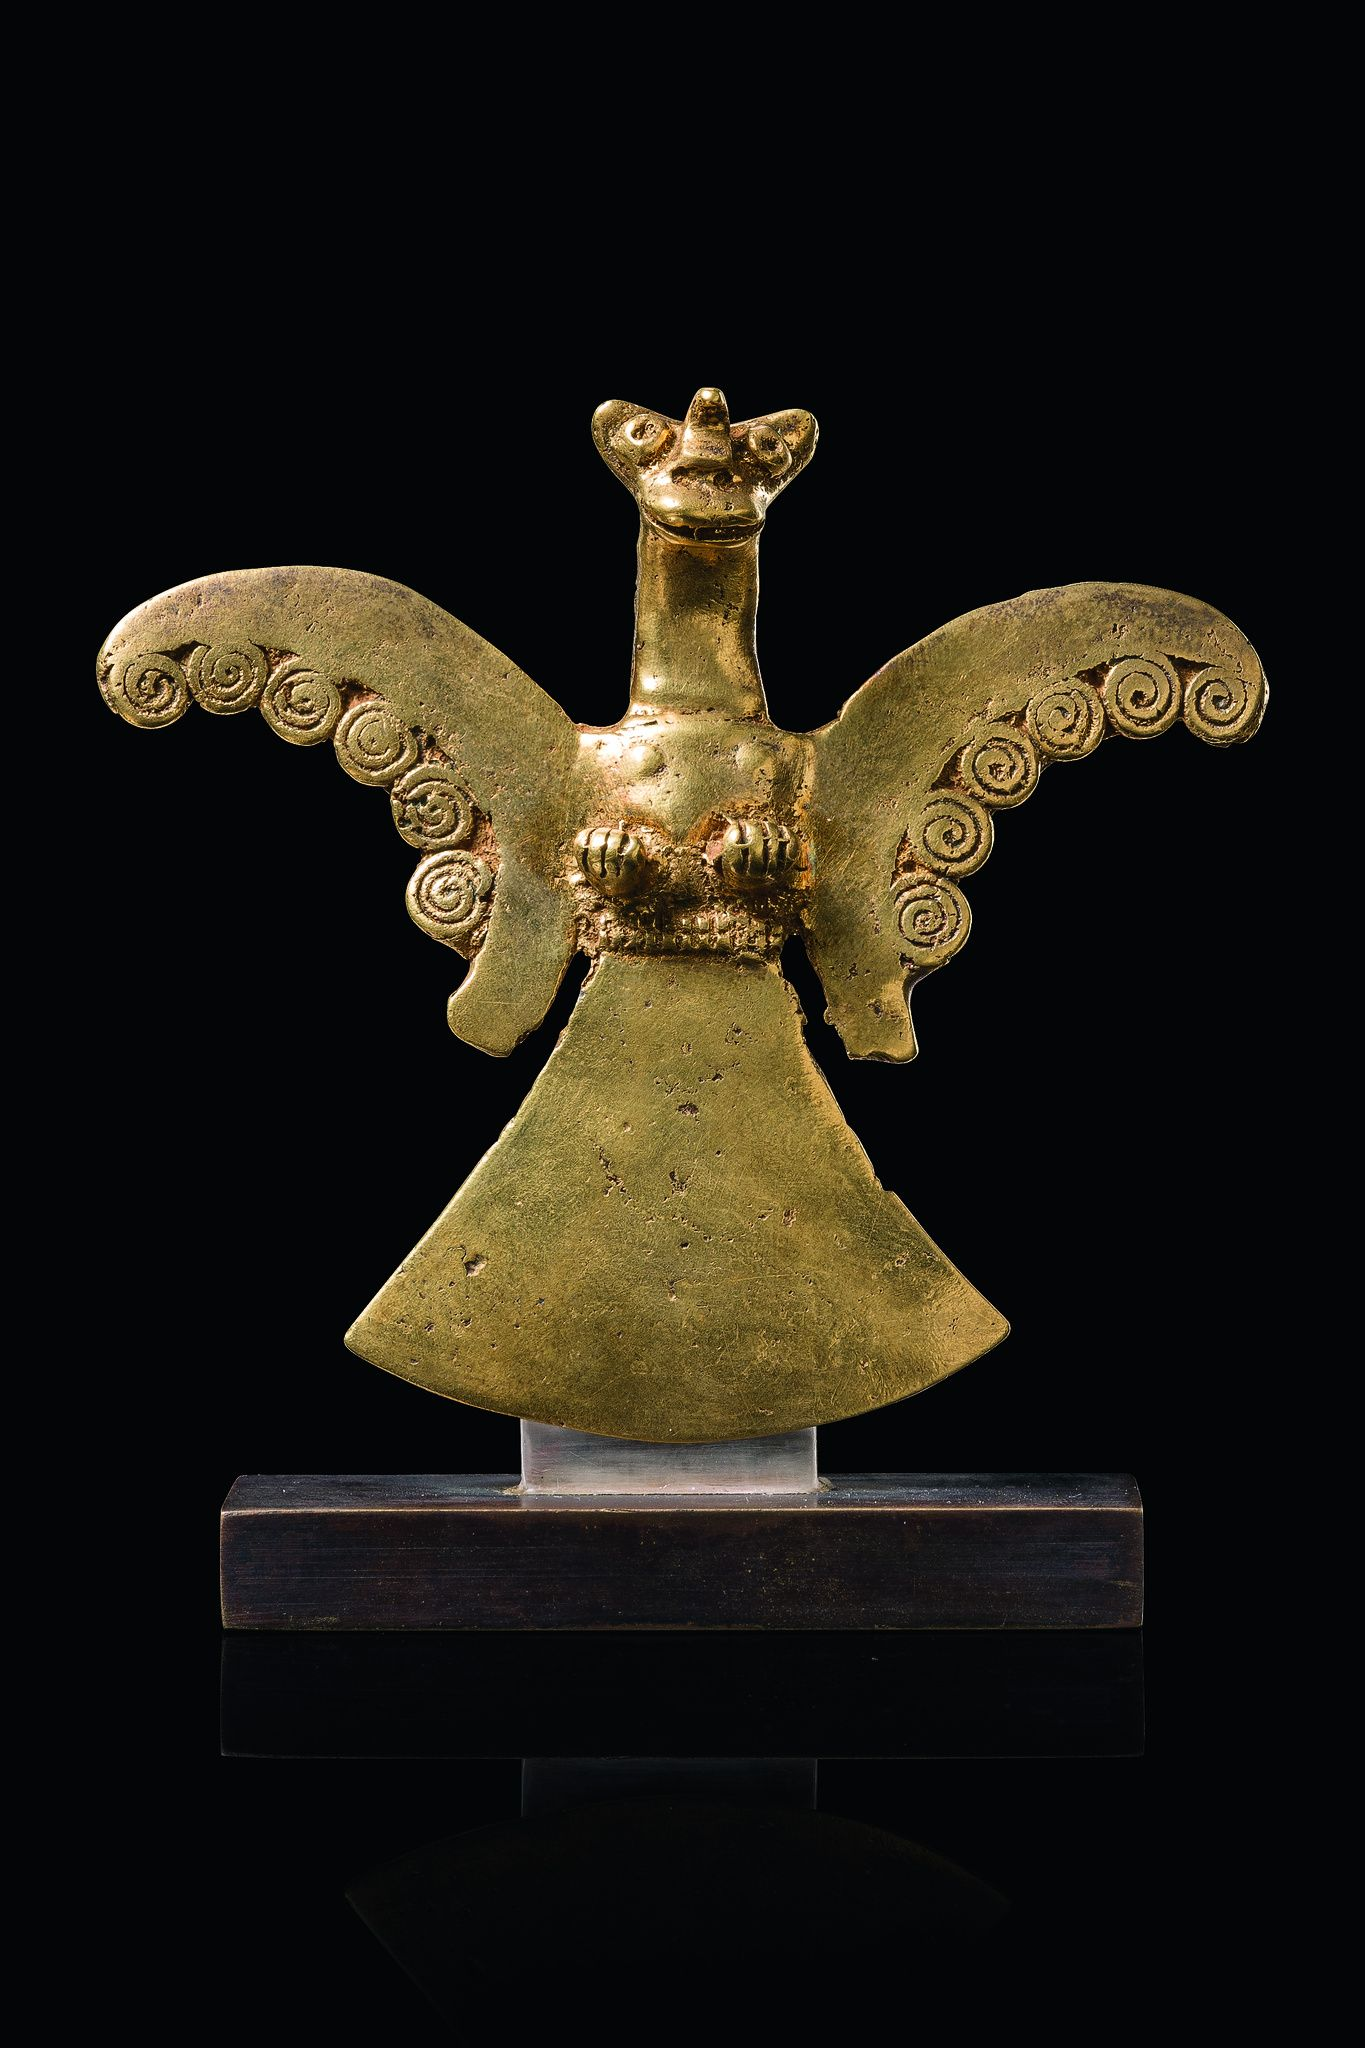 Pectoral bird - Colombia, Sinú gold, weight: 64 gram, cast and hammered, with outstretched wings and fan-like tail, the claws projecting forward, each wing edge with six coils, elongated neck, head with pointed ears and single horn in the middle, eyelet for attachment behind, custom mount; around 1500 B. C.